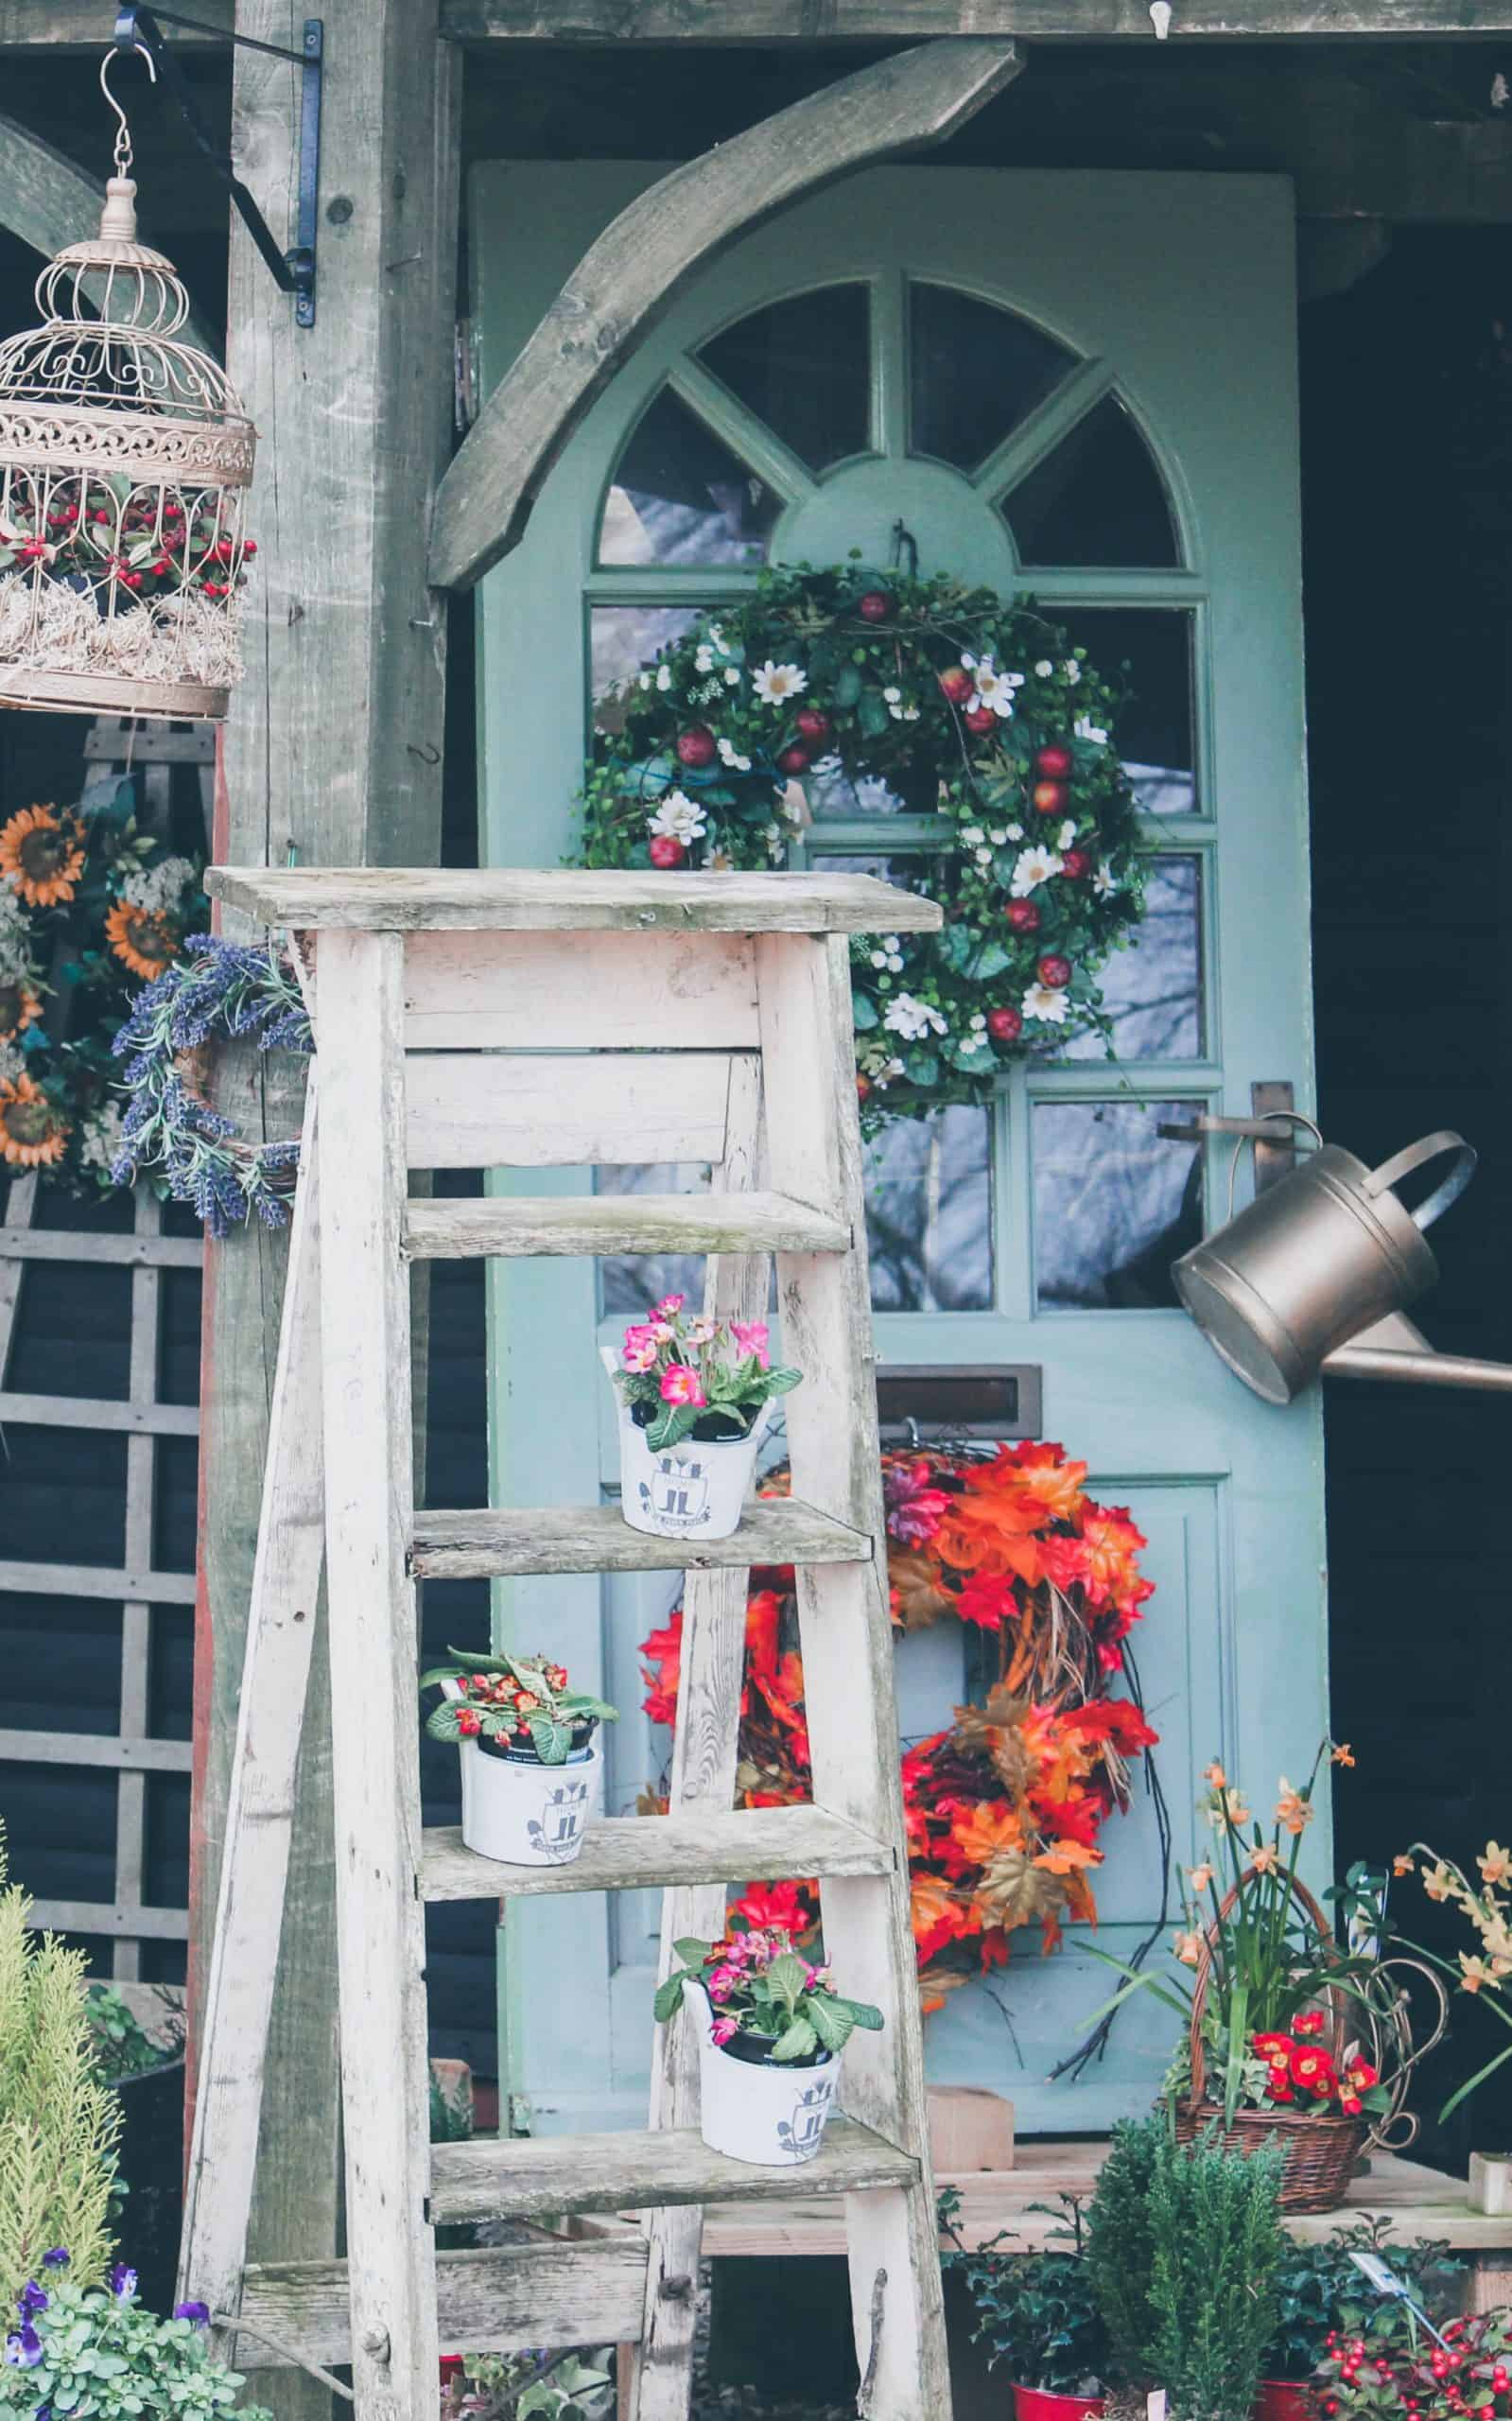 Tips To Make Floral Designs Like a Florist